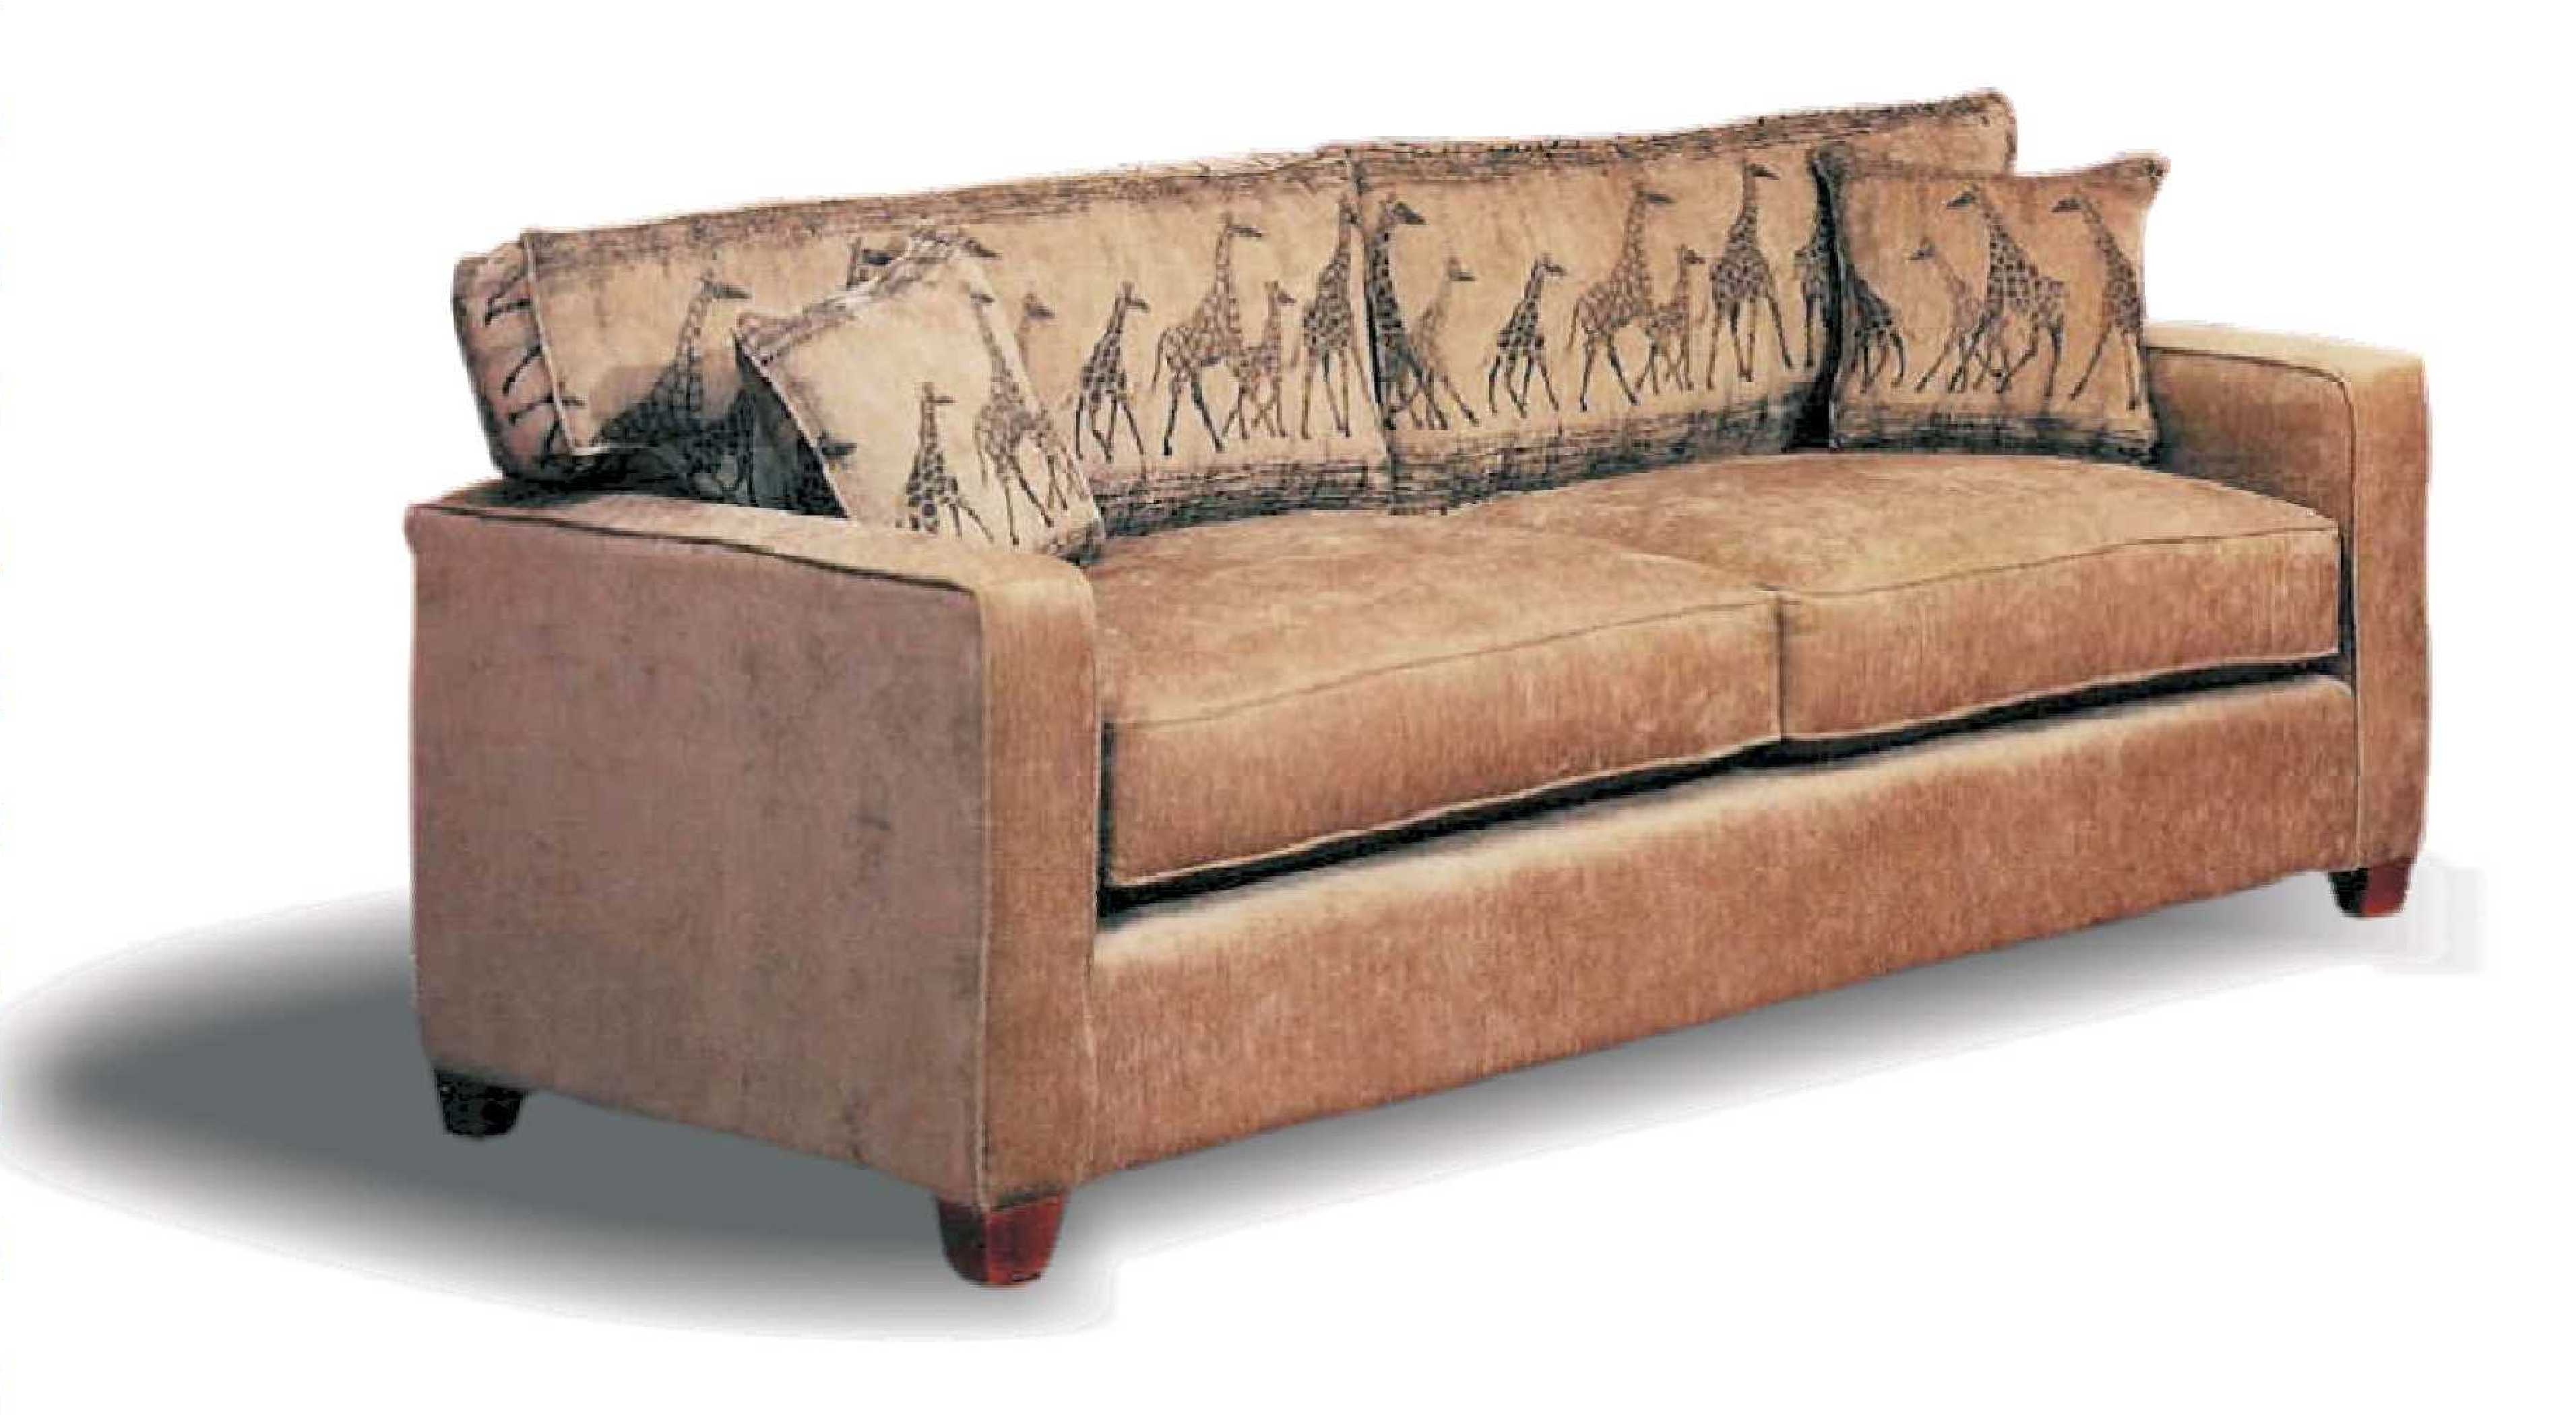 La cienega sofa factory - Images of sofa ...